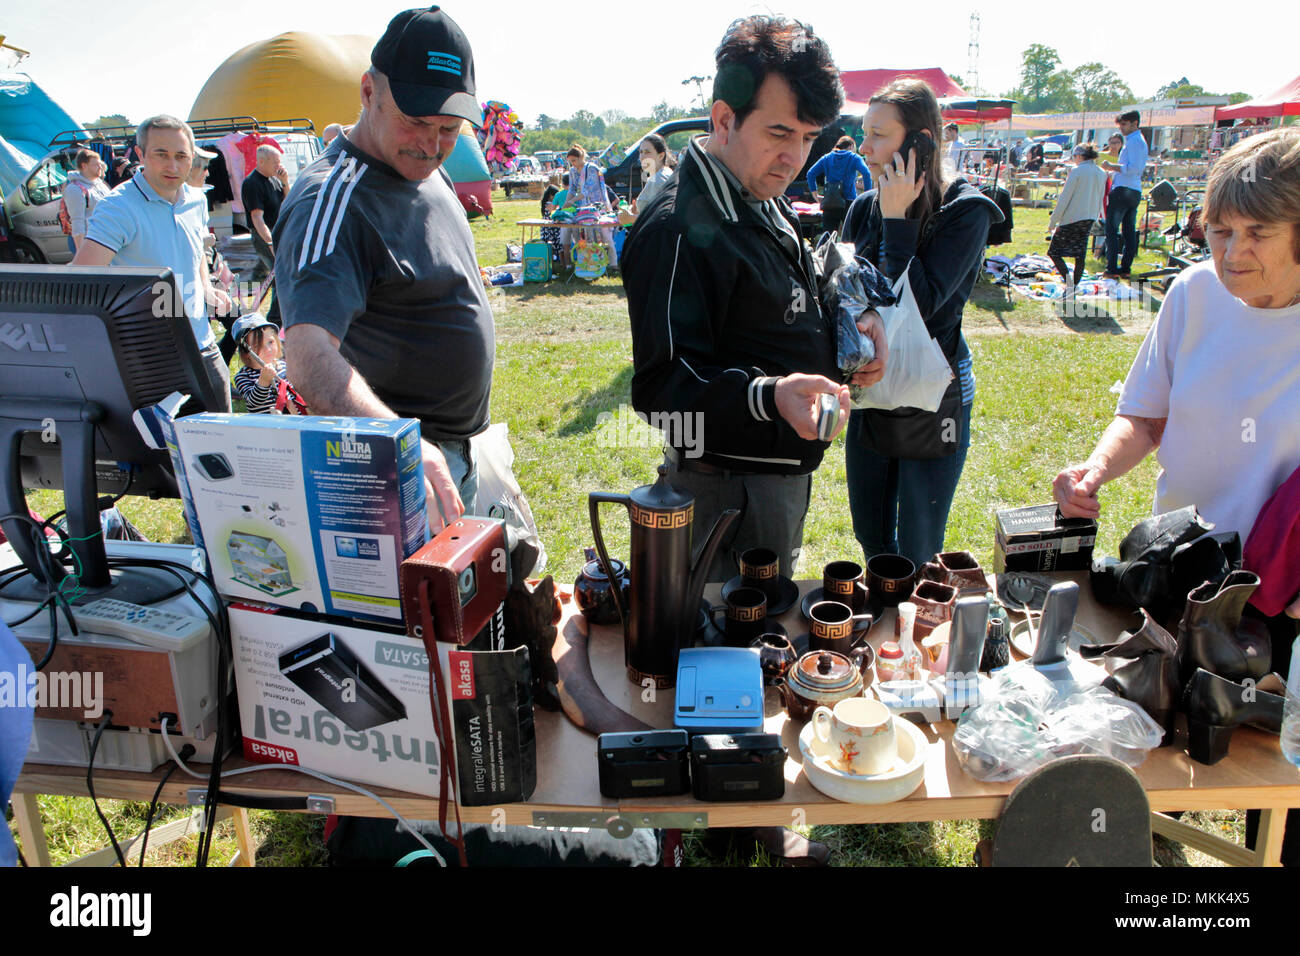 Carboot Stock Photos Carboot Stock Images Page 3 Alamy